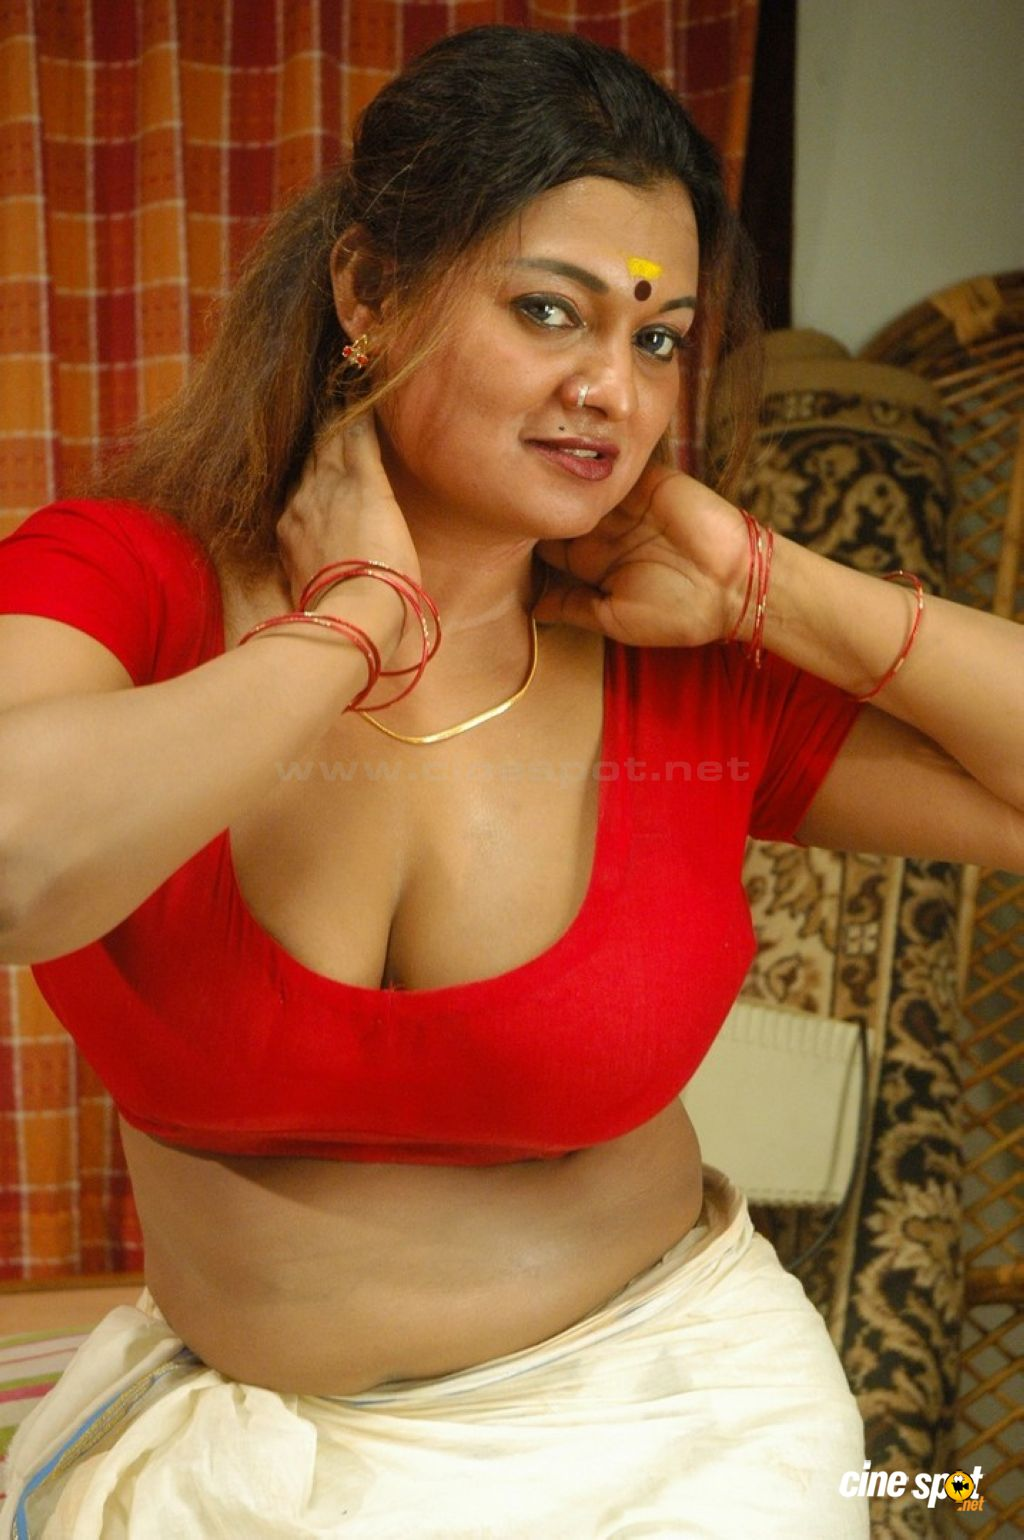 South Indian Sex Bomb Actress Showing Sexy Big Boombs - Hd -7705